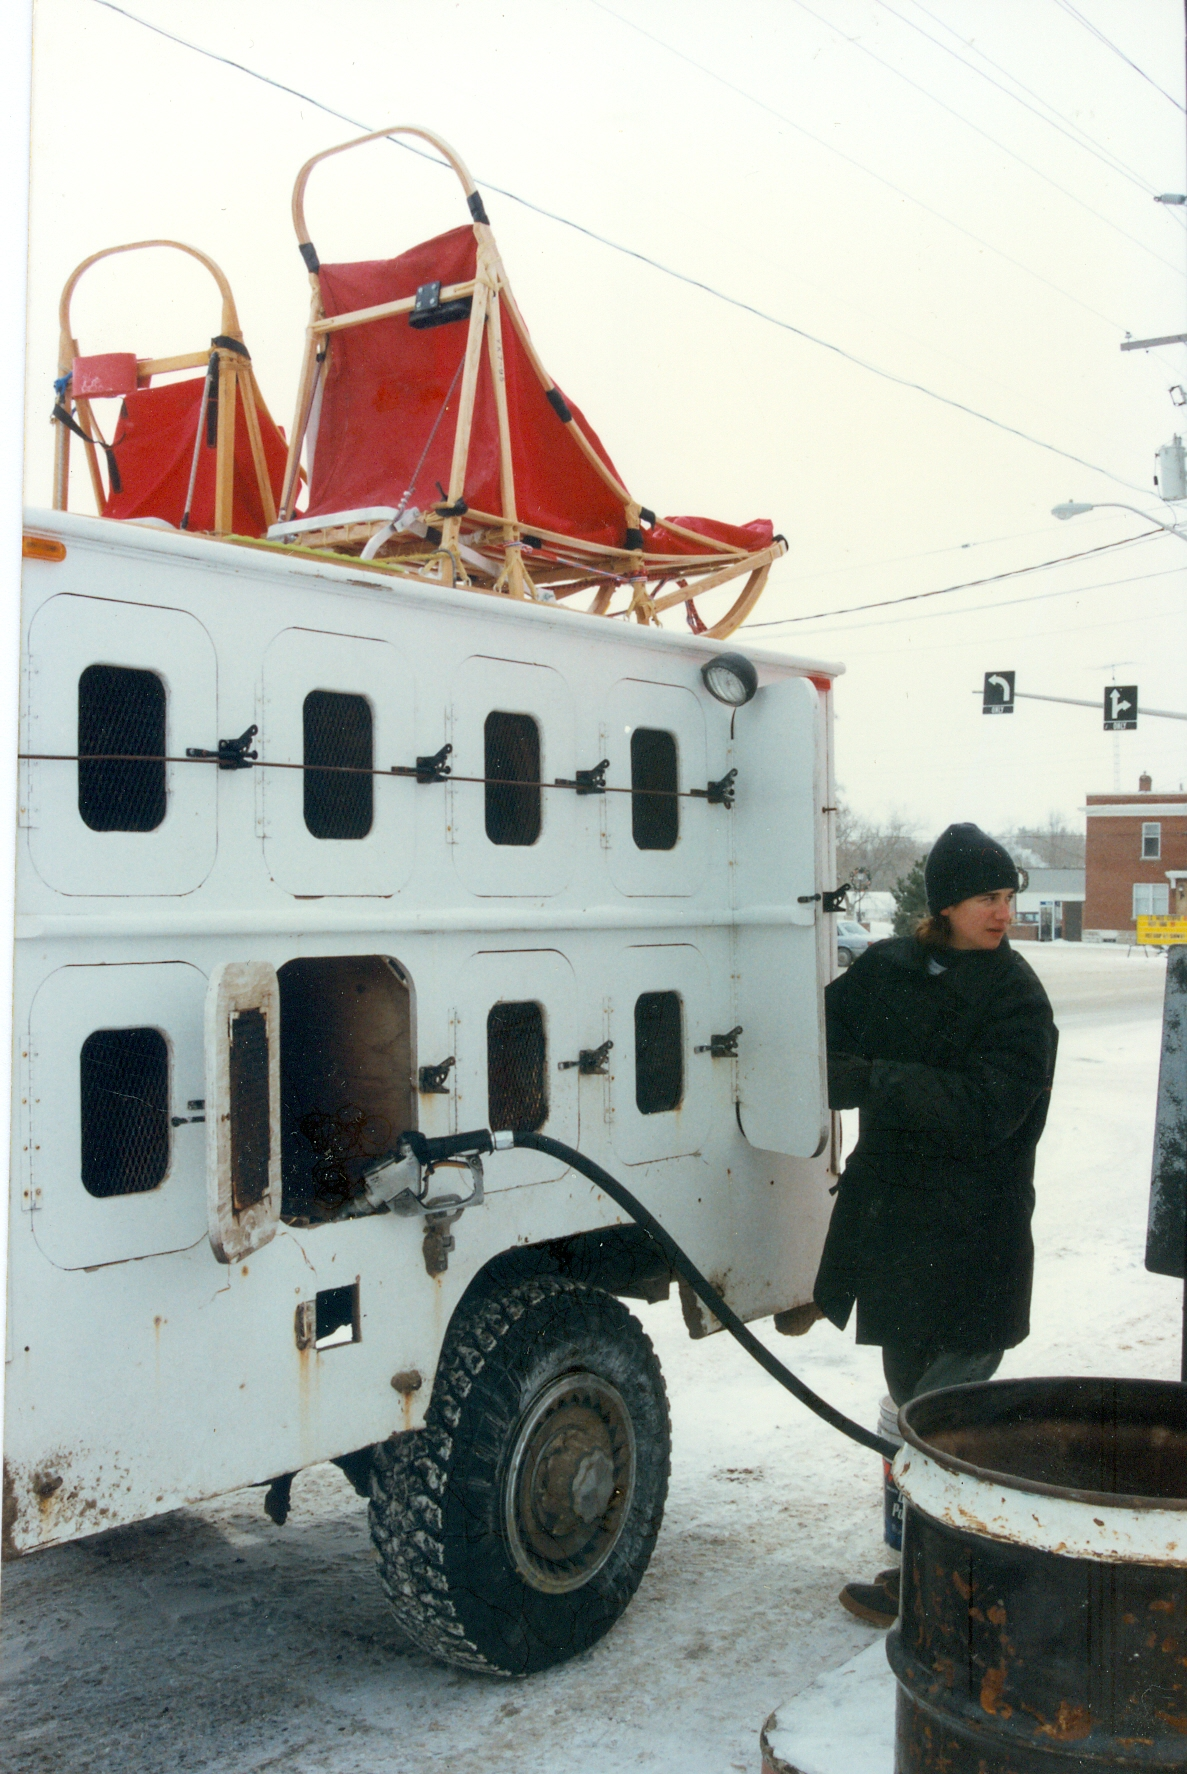 Adrian Philpot pumping gas at Terrion's Esso